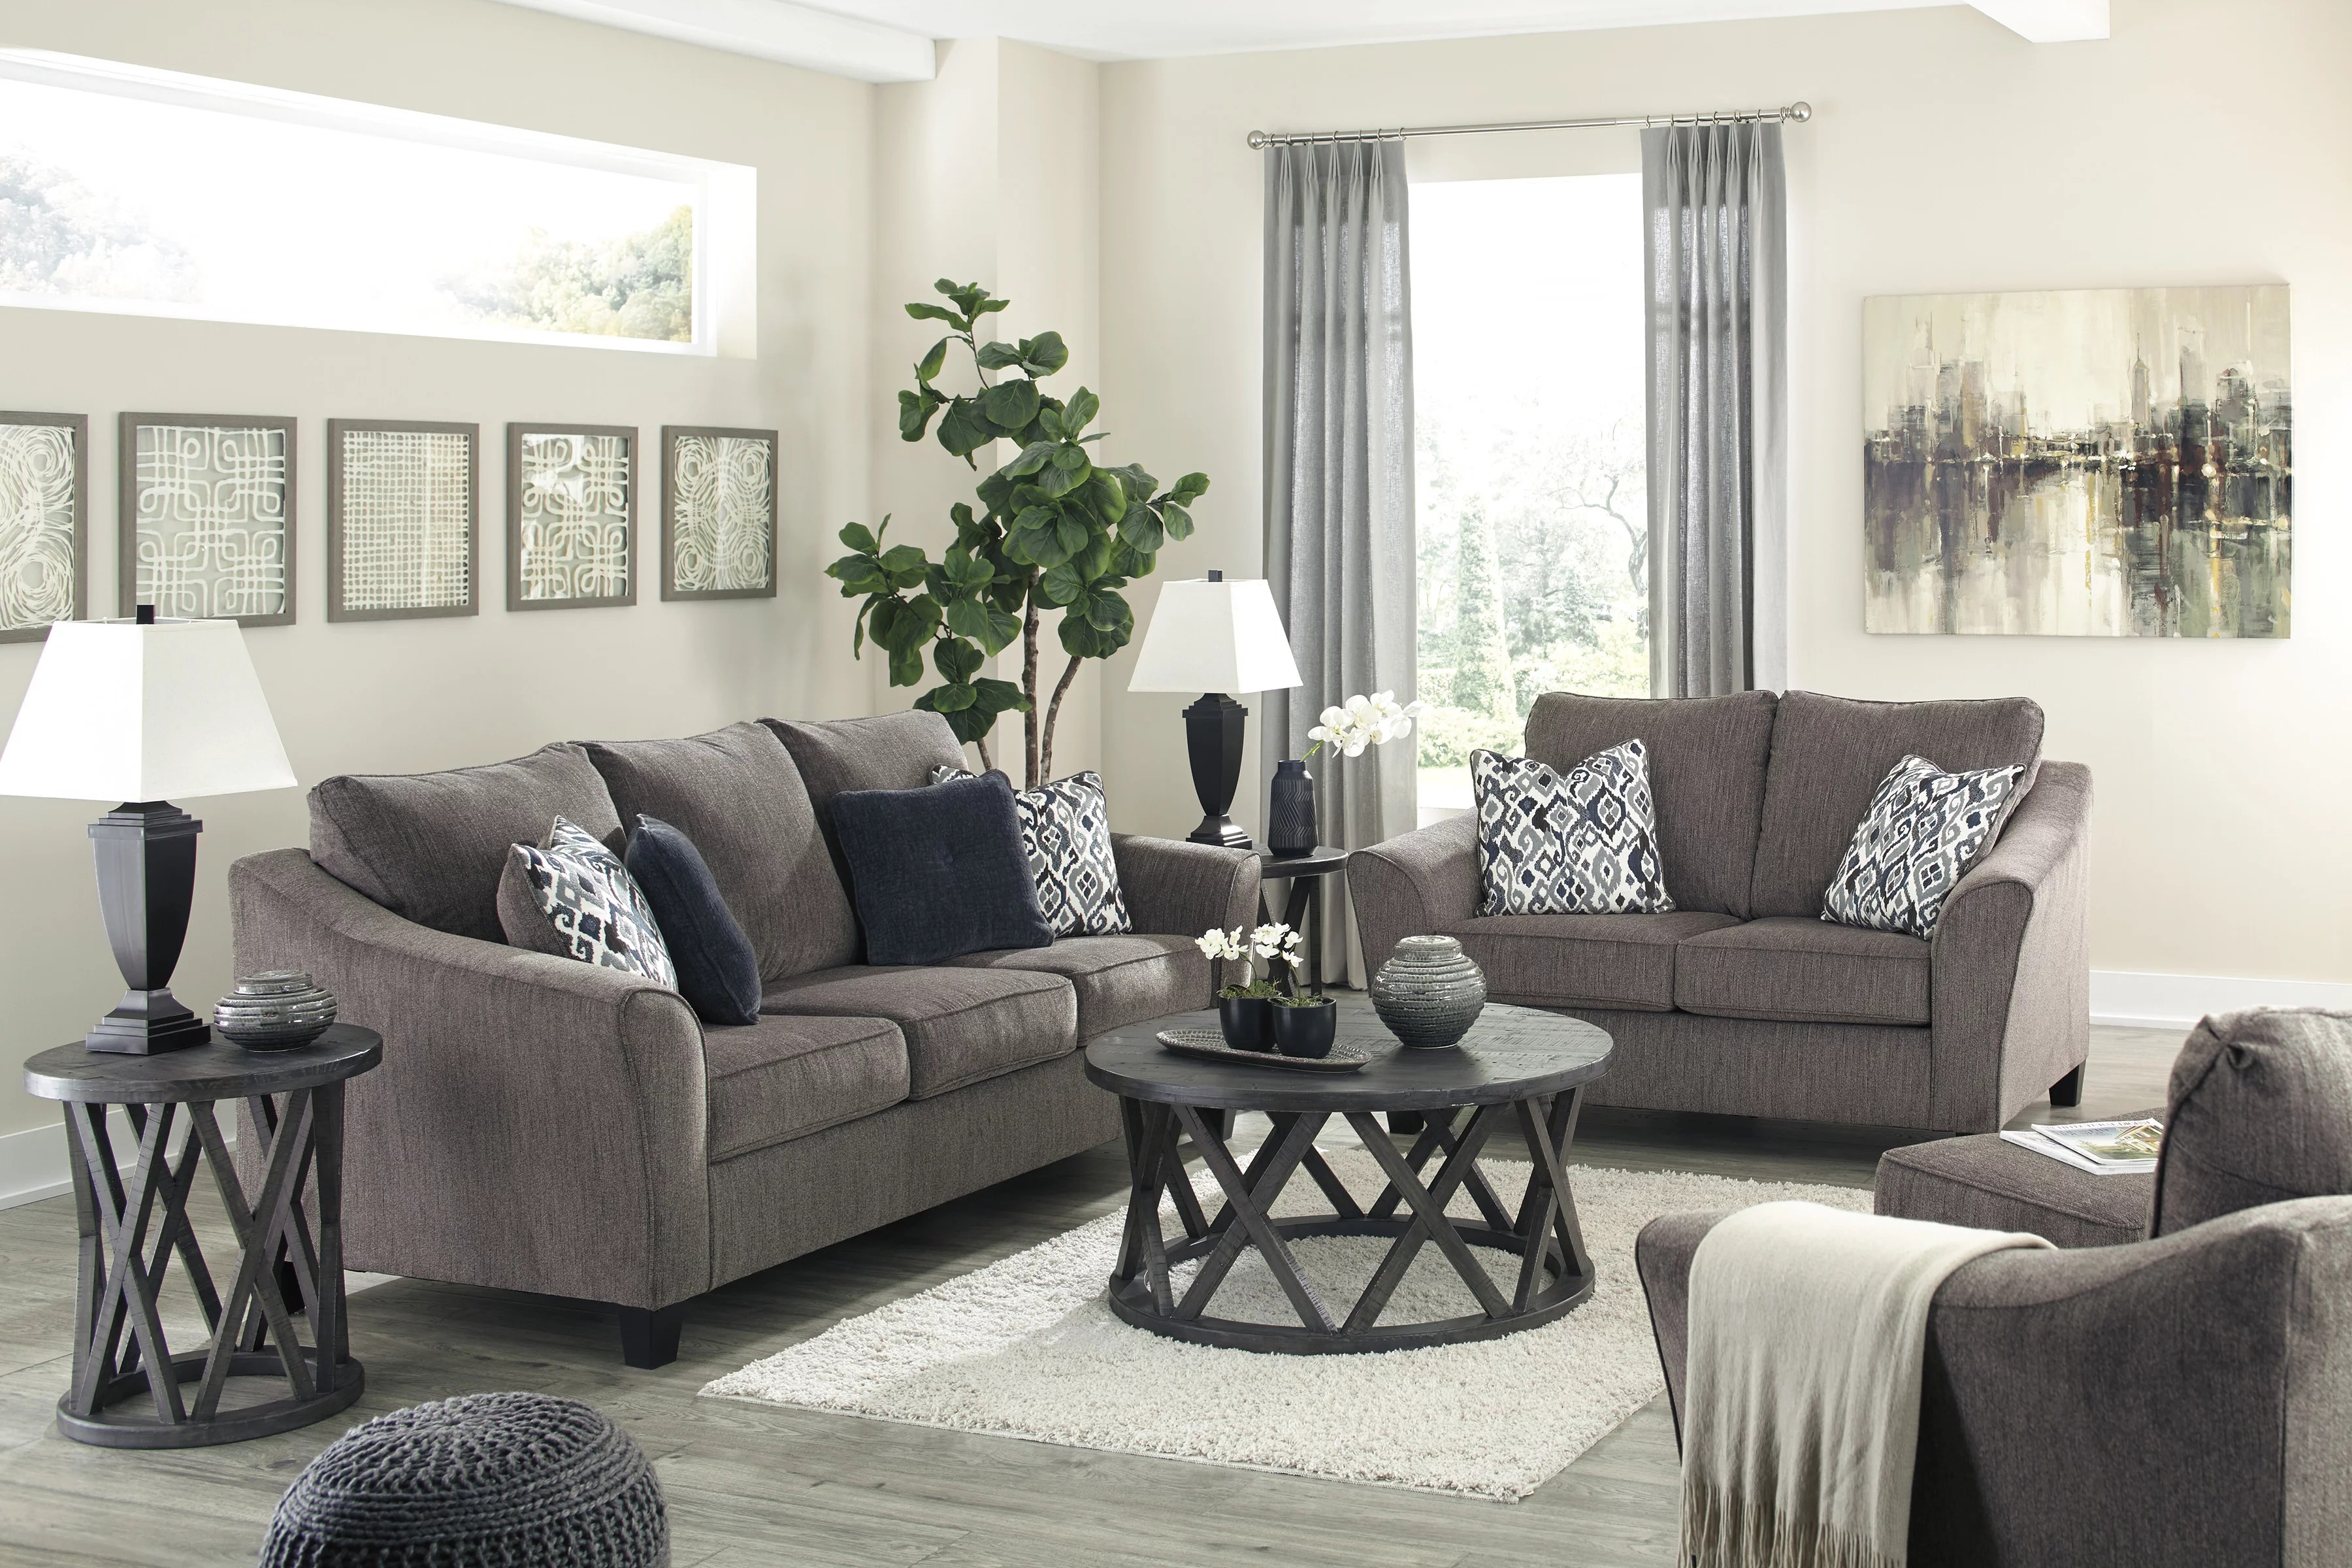 Room picture of the Nemoli Sofa and Loveseat sets the scene for a modern space full of casual flair with its flared arms. Its textured chenille with solid microfiber upholstery provides a luxuriously soft feel that's inviting.